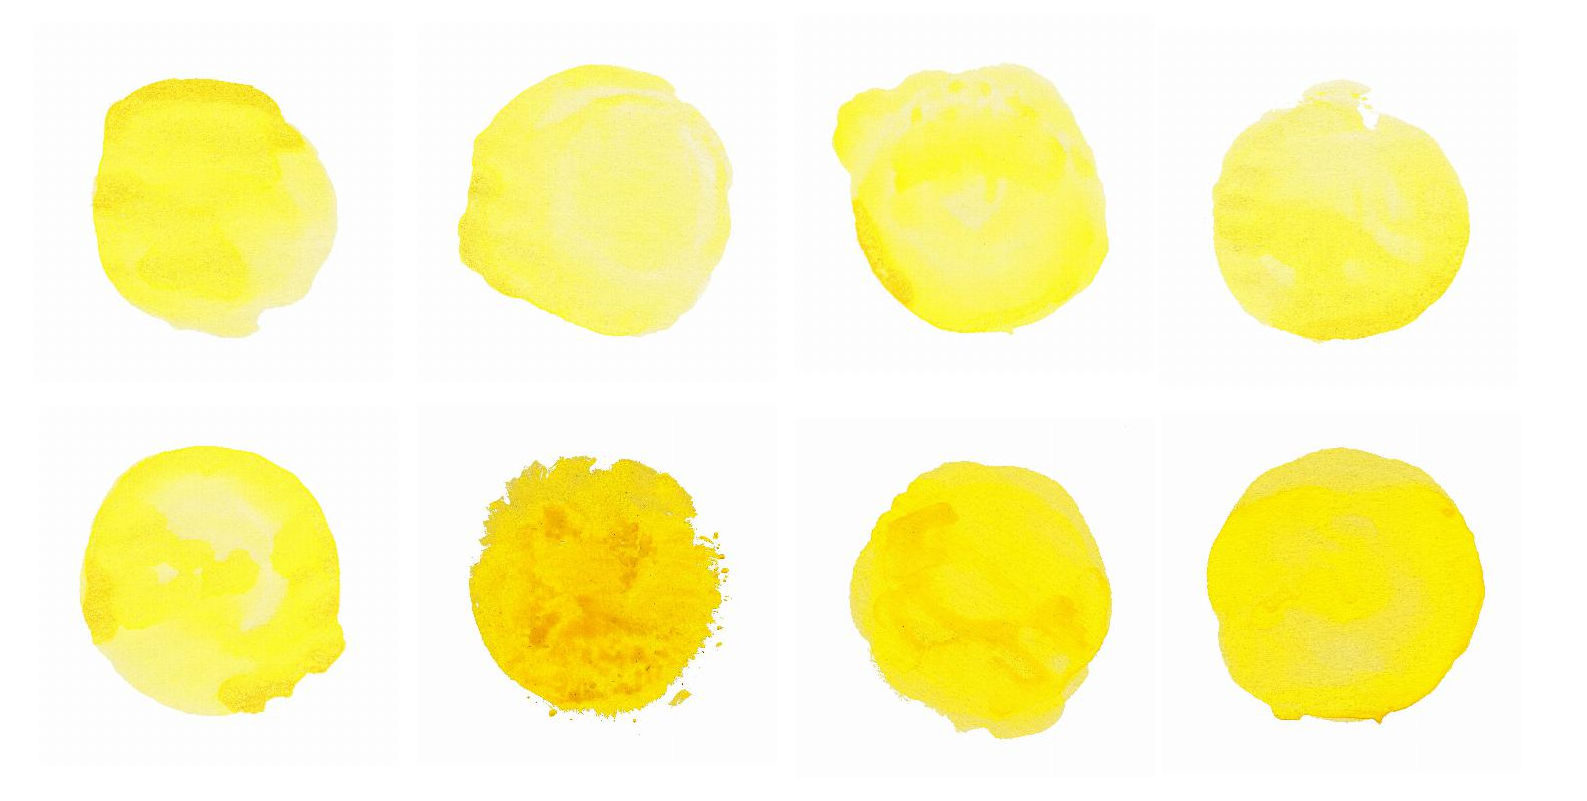 8-yellow-watercolor-circle-background-cover.jpg